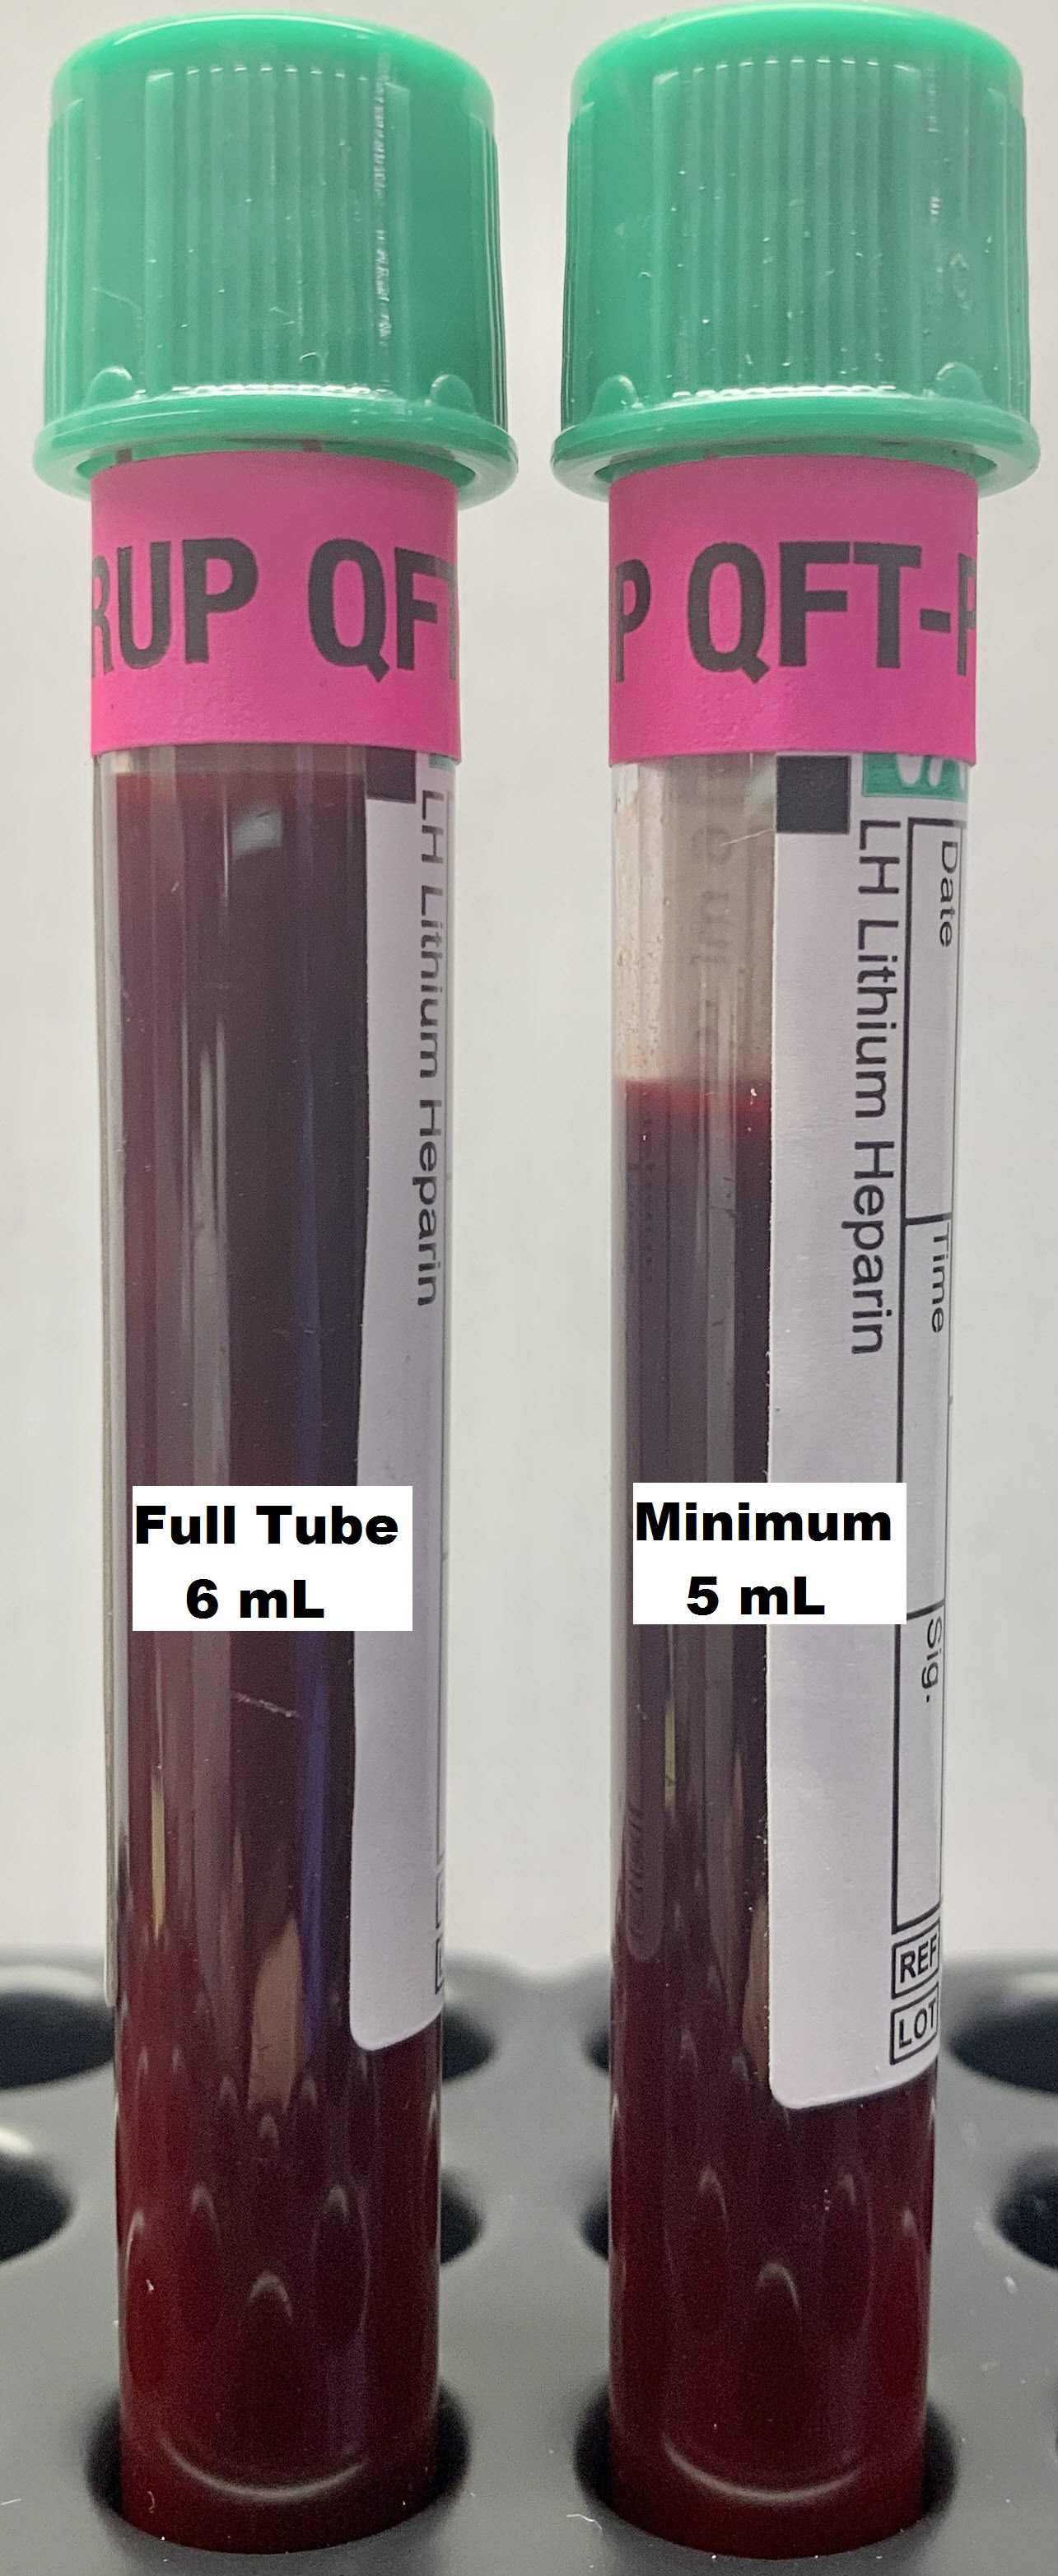 Quantiferon gold plus tubes